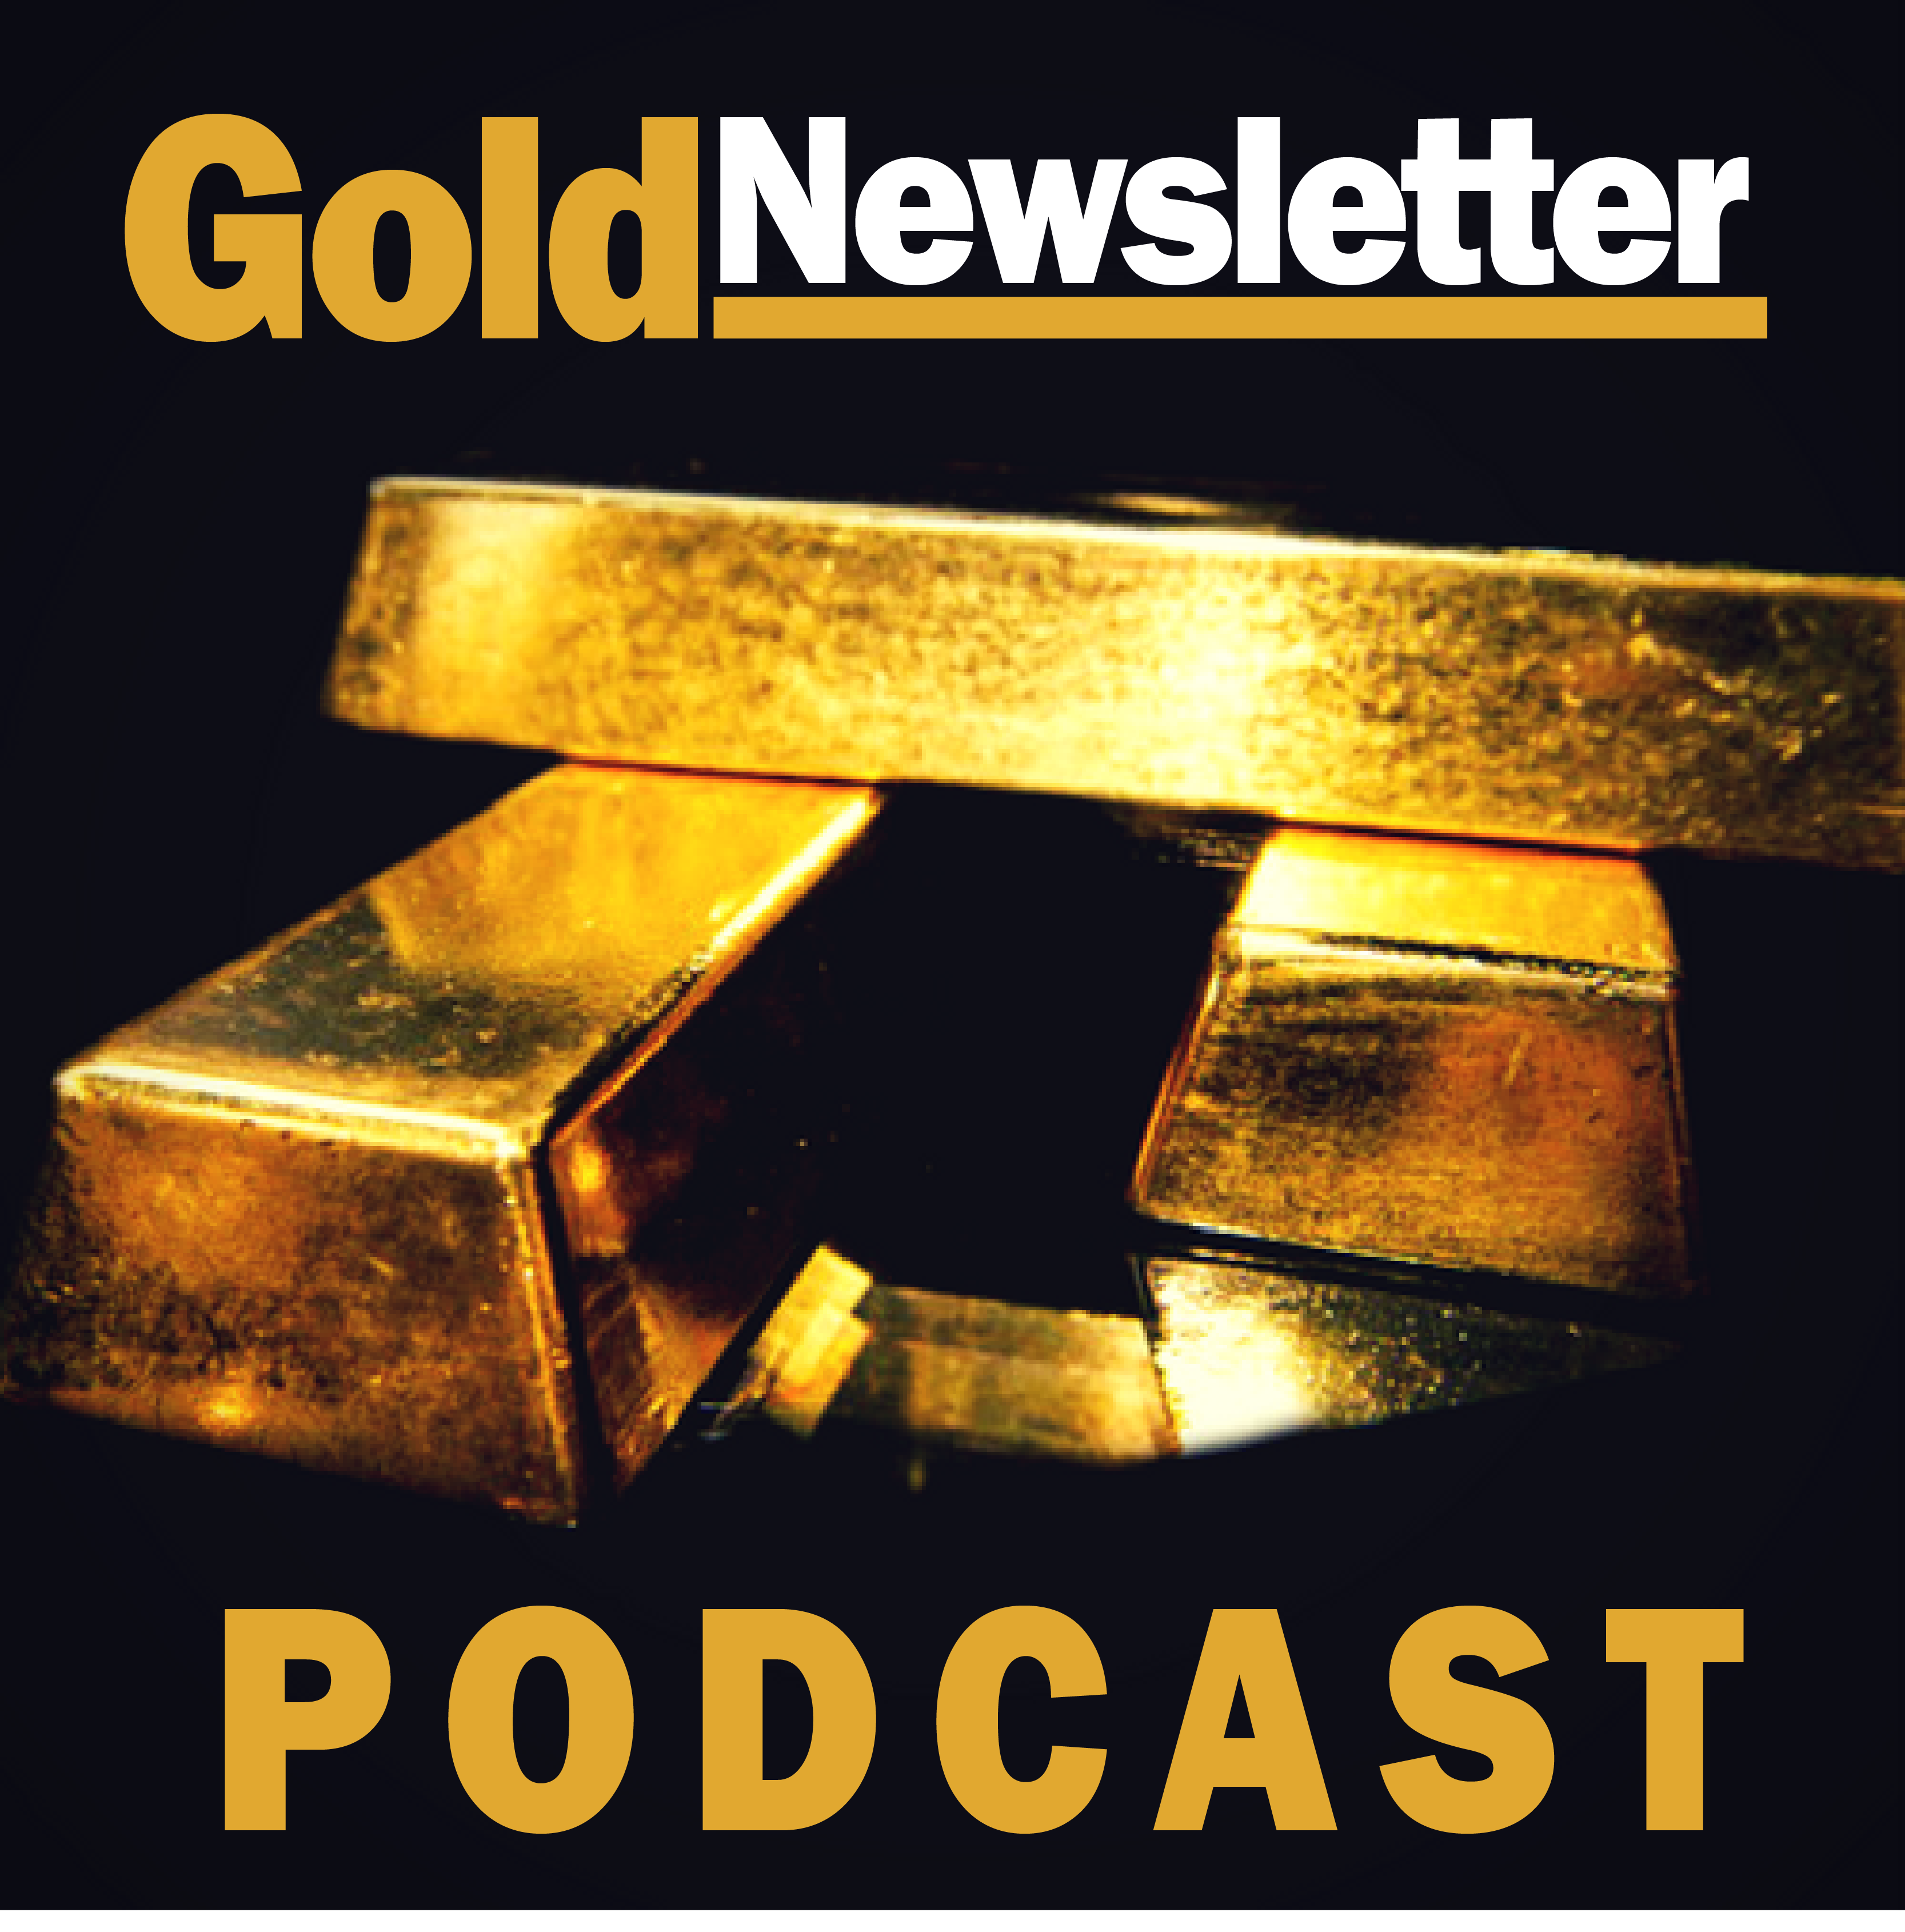 Gold Newsletter Podcast – Stakeholder Capitalism Perverts Adam Smith's Legacy